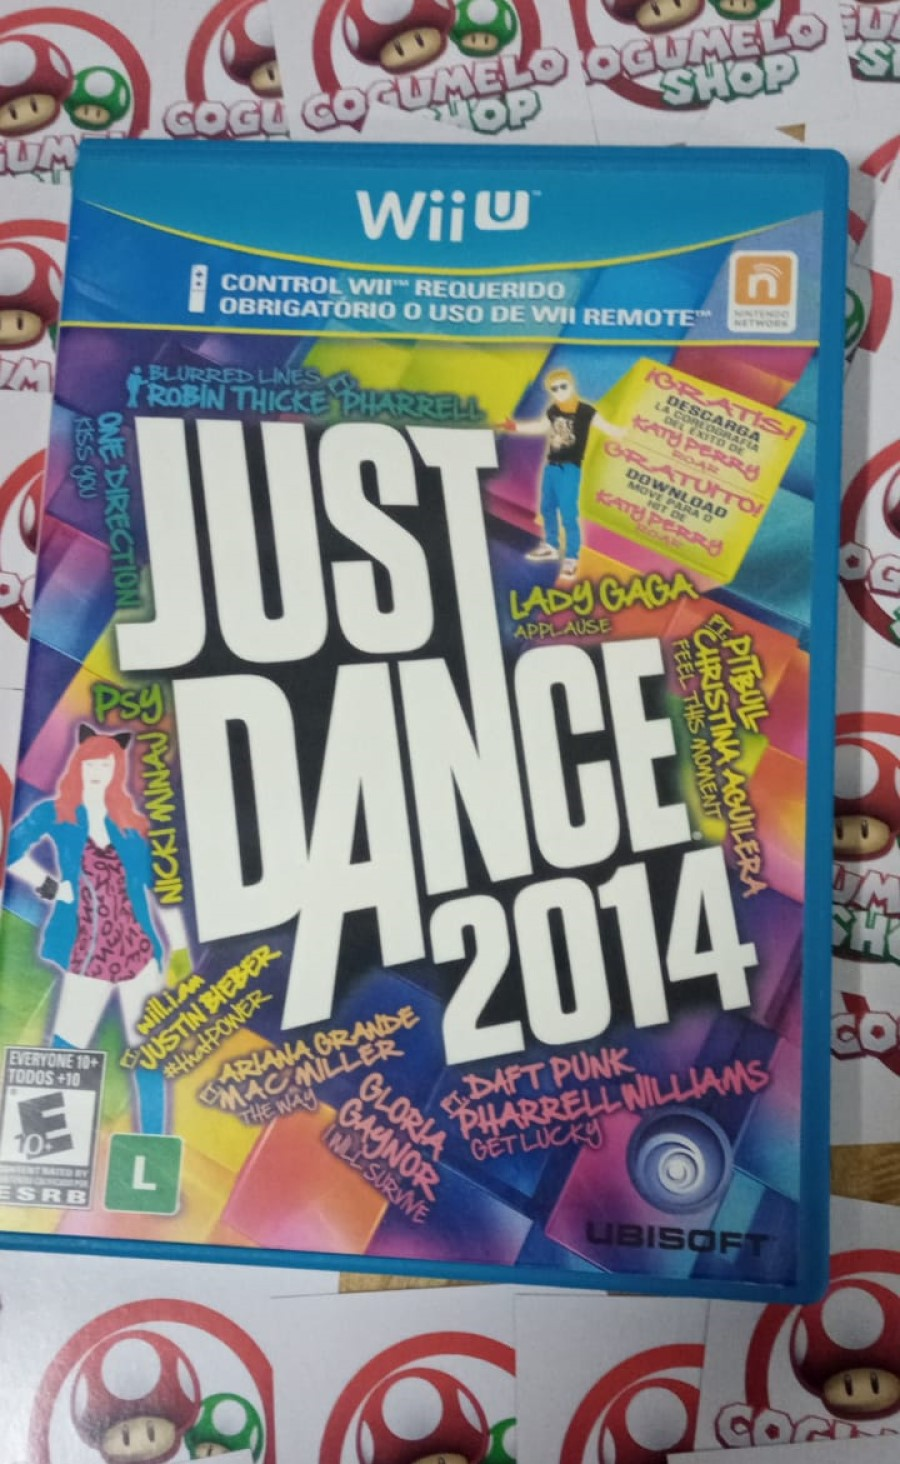 Just Dance 4 - USADO - Nintendo Wii U